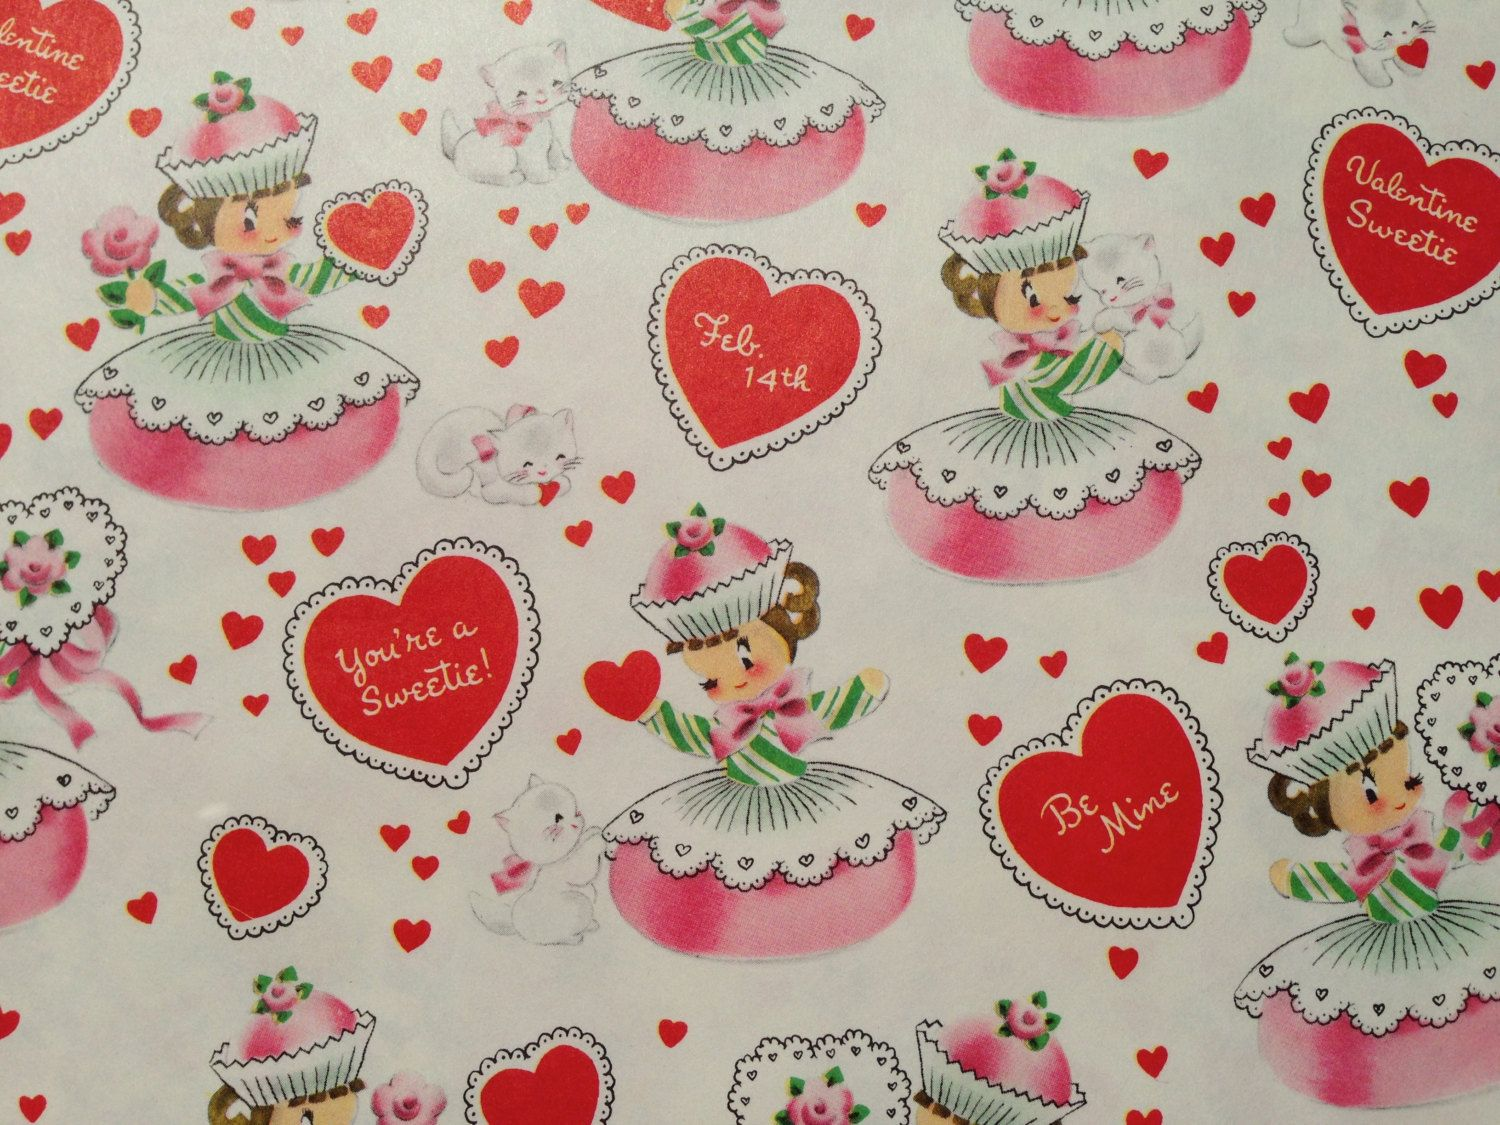 vintage gift wrapping paper valentines day cupcake girls and white cat valentine sweetie by norcross 1 unused full sheet gift wrap - Valentines Day Wrapping Paper